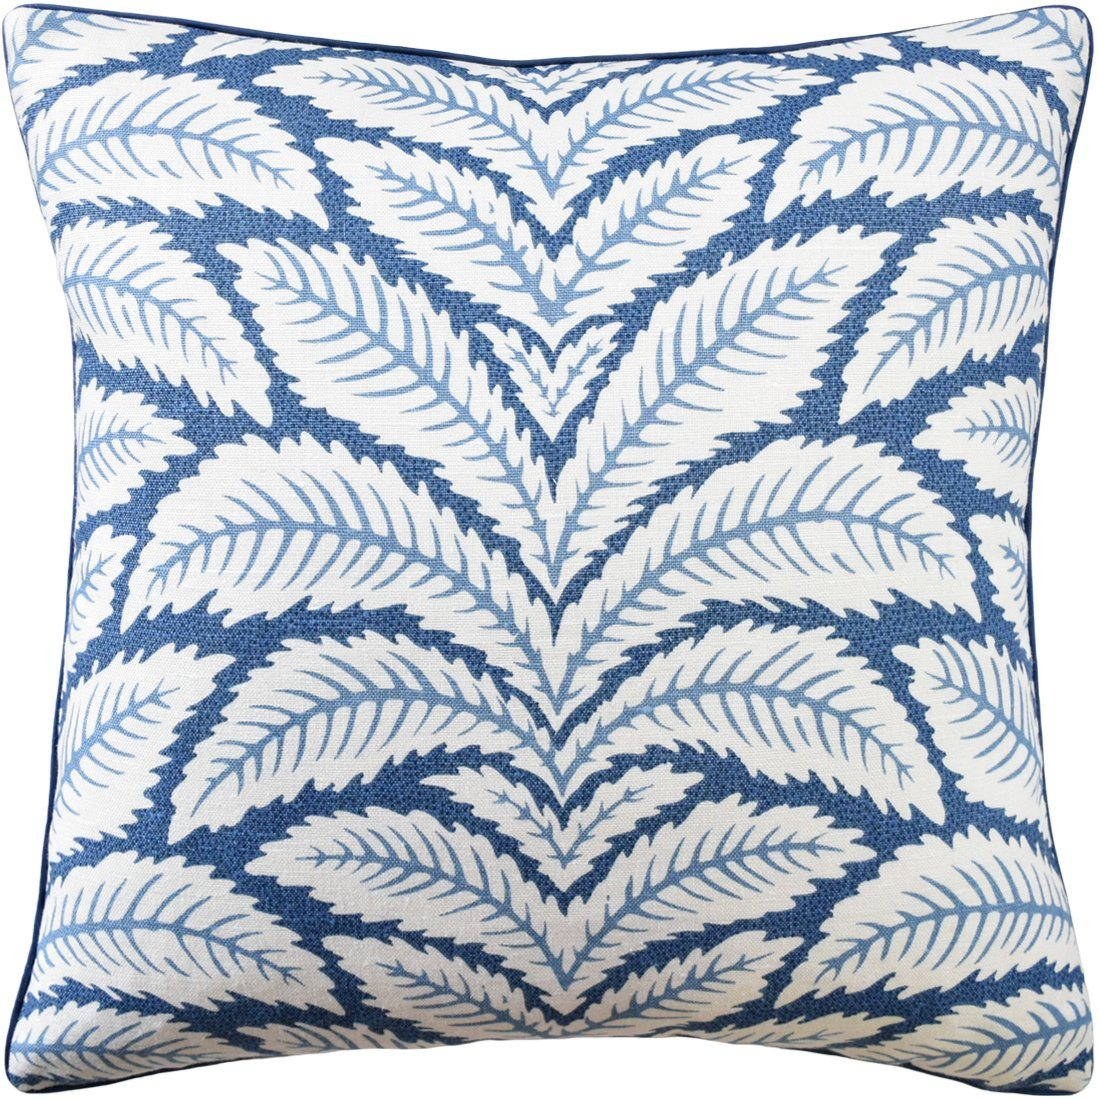 talavera indigo pillow - ryan studio at fig linens - kravet - brunschwig